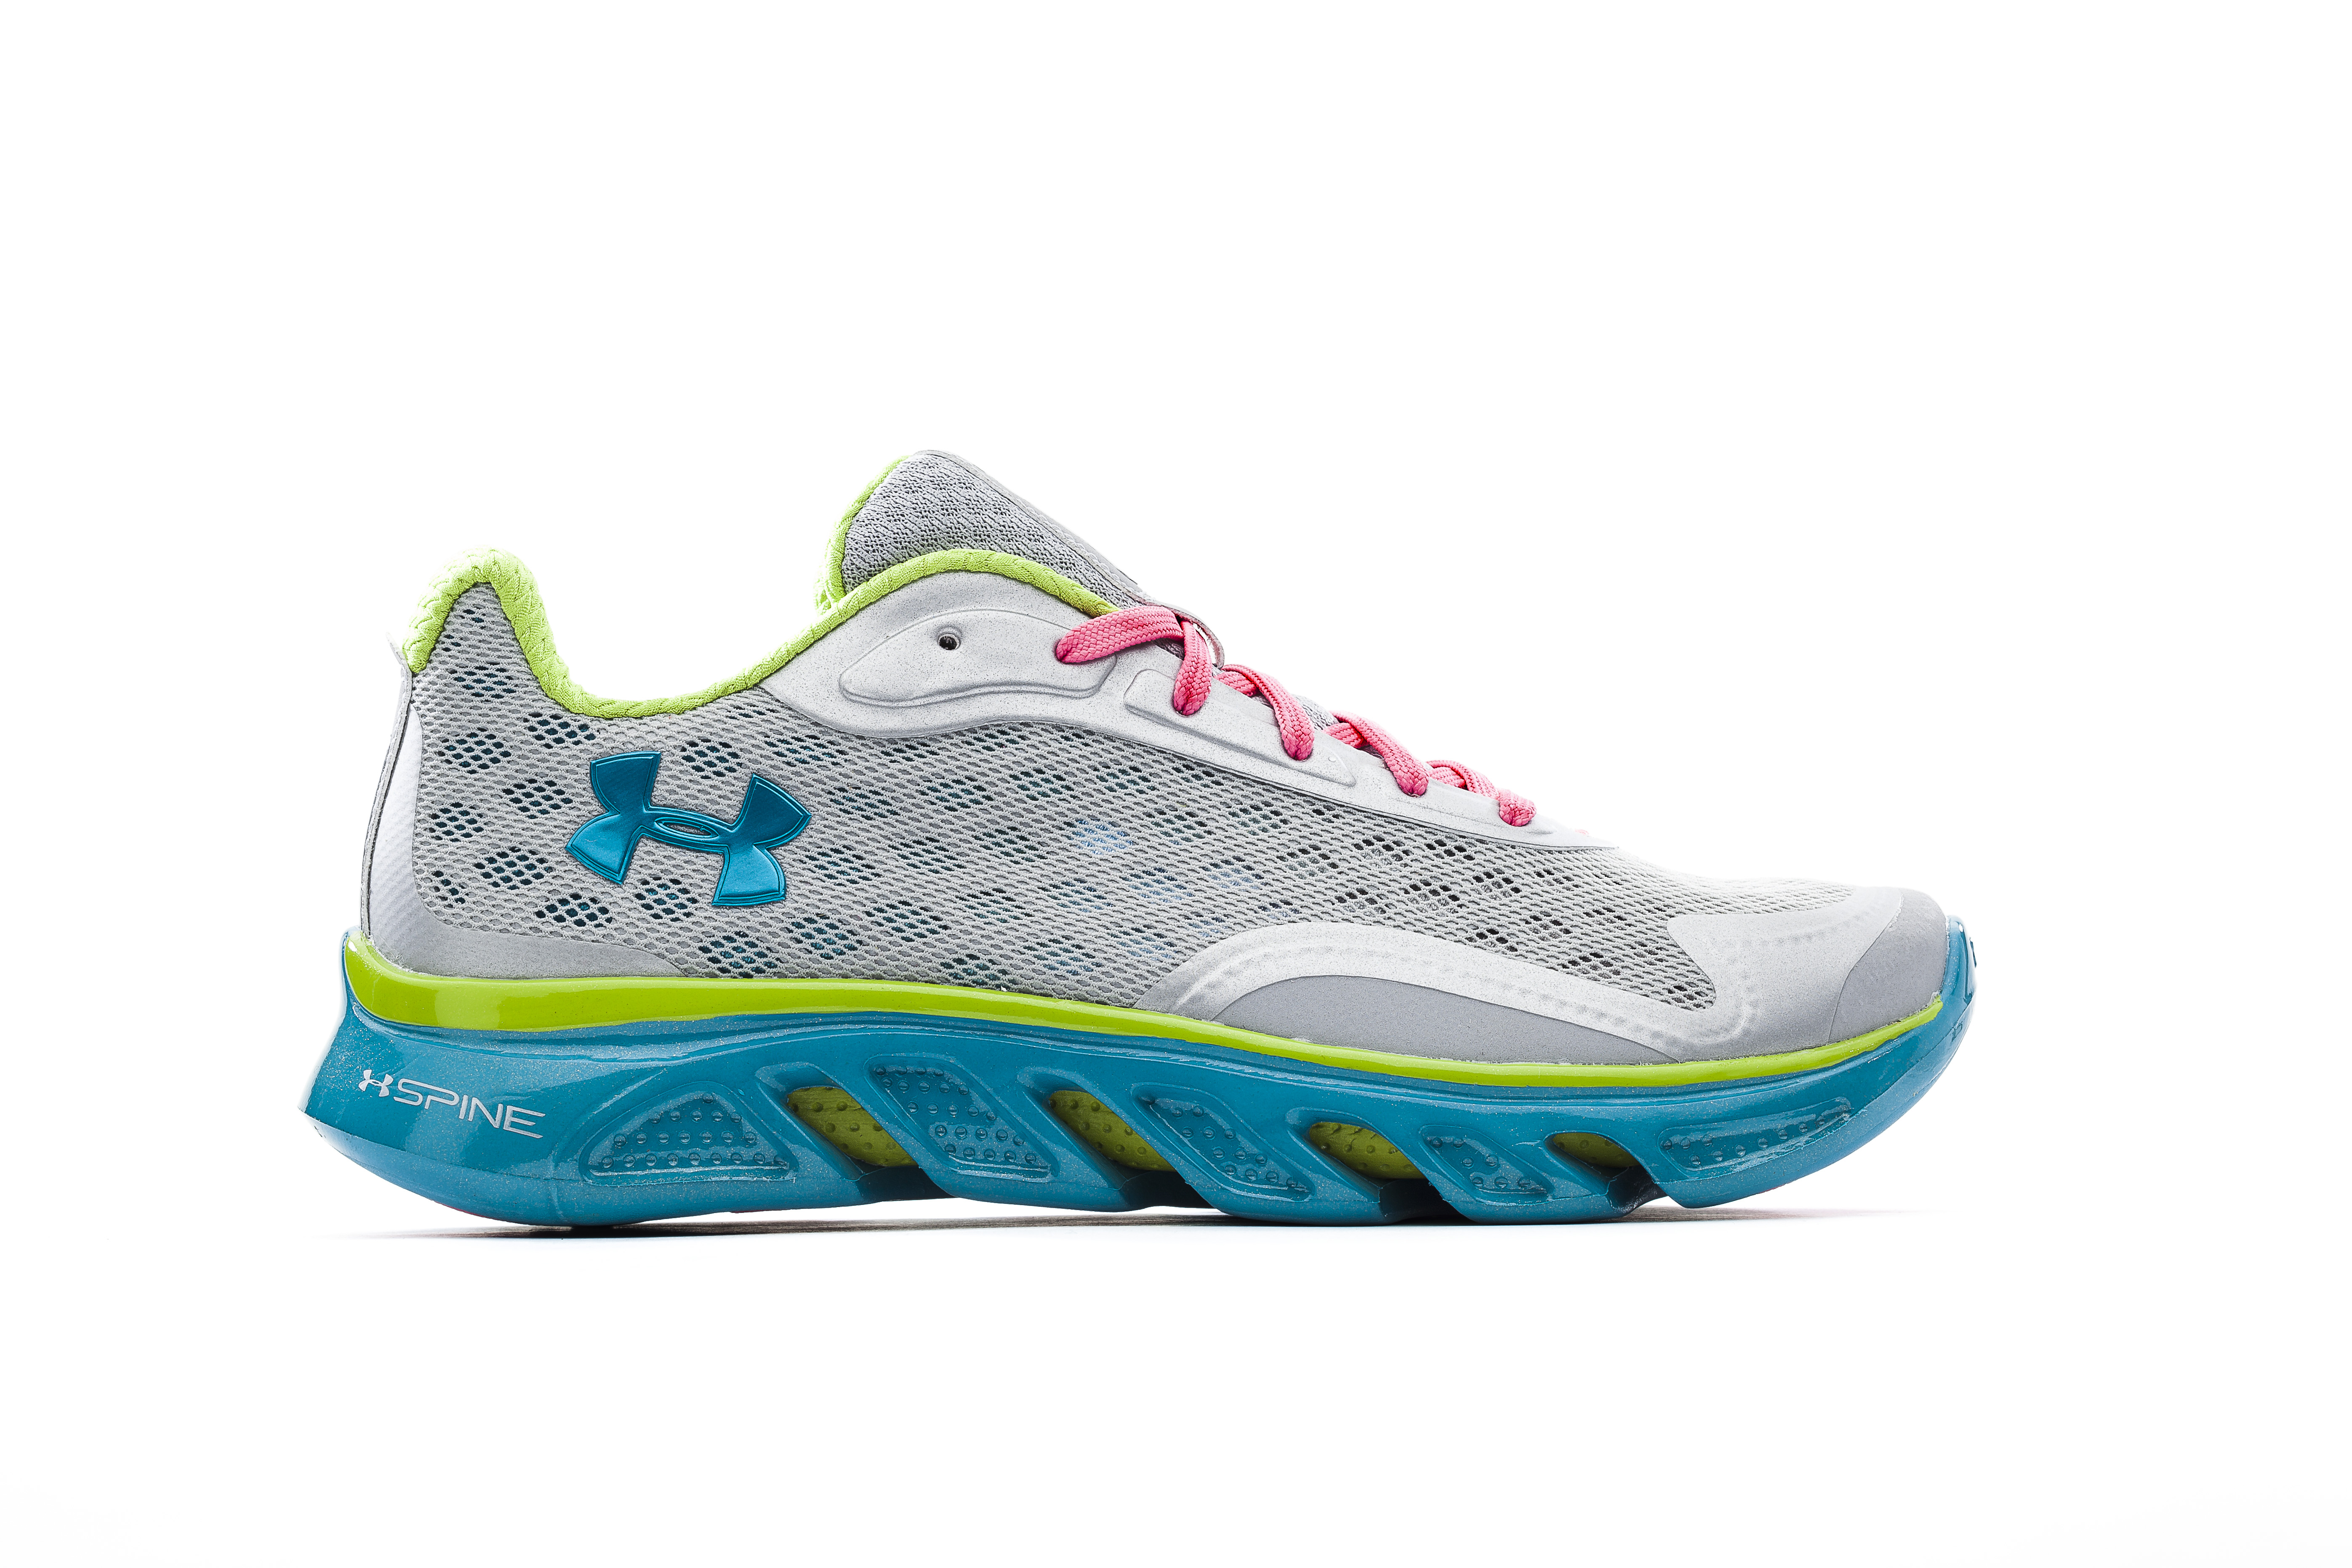 Under Armour Unveils New UA Spine RPM Running Footwear Collection With